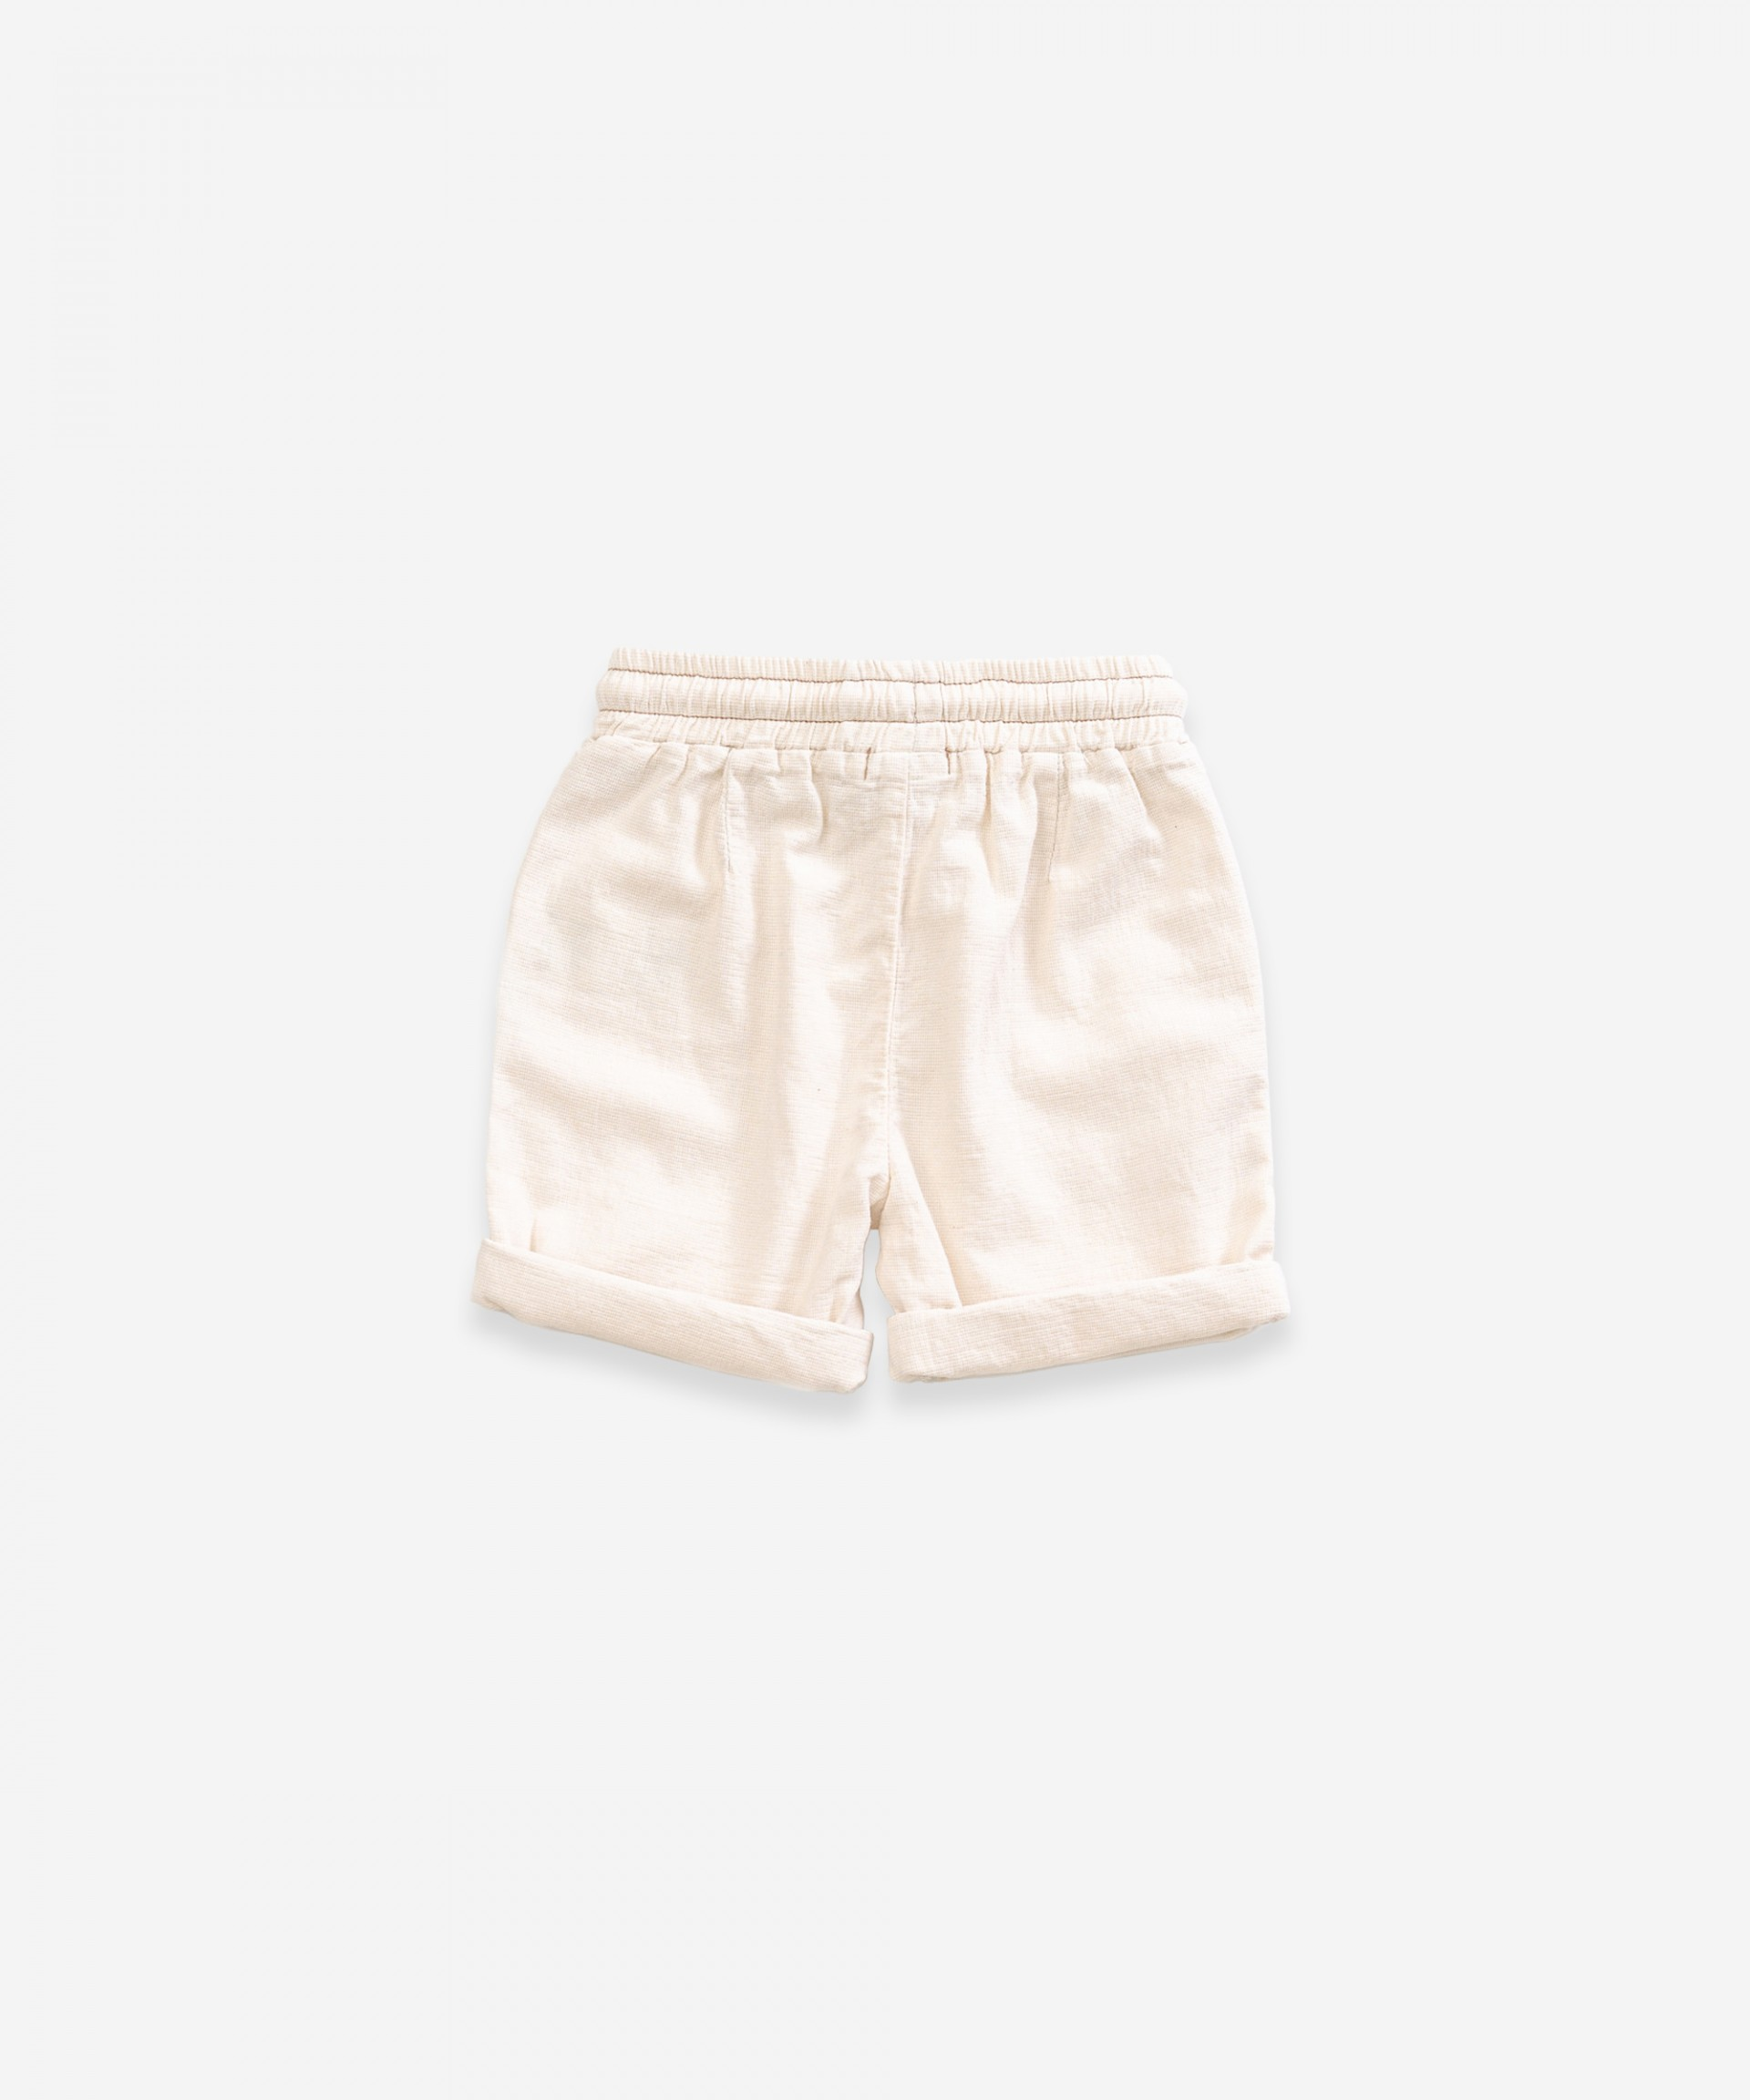 Twill shorts with pockets | Weaving